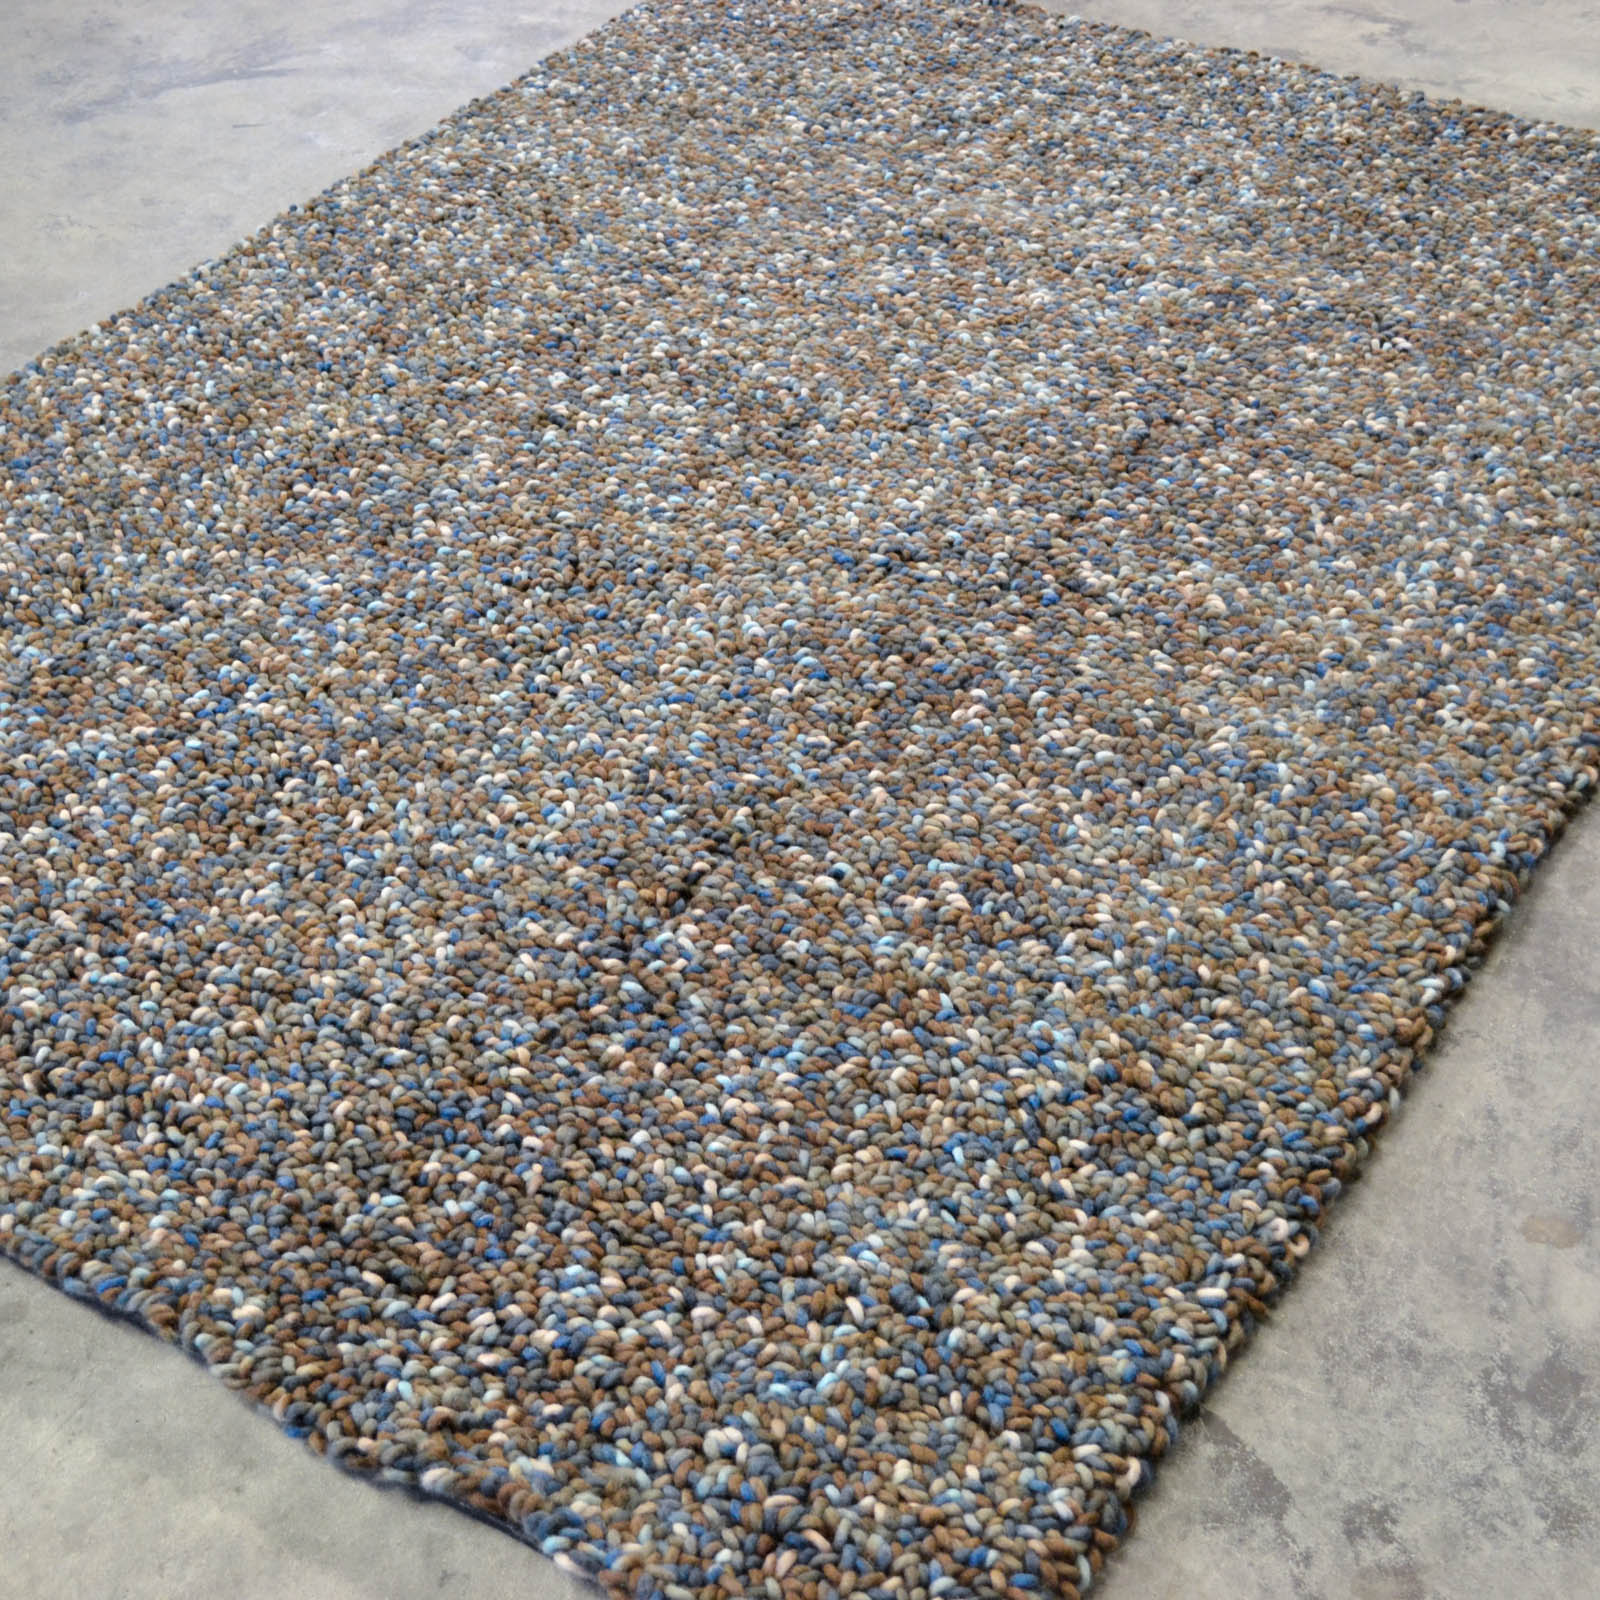 Stone Rugs 18815 Brown Blue by Brink and Campman